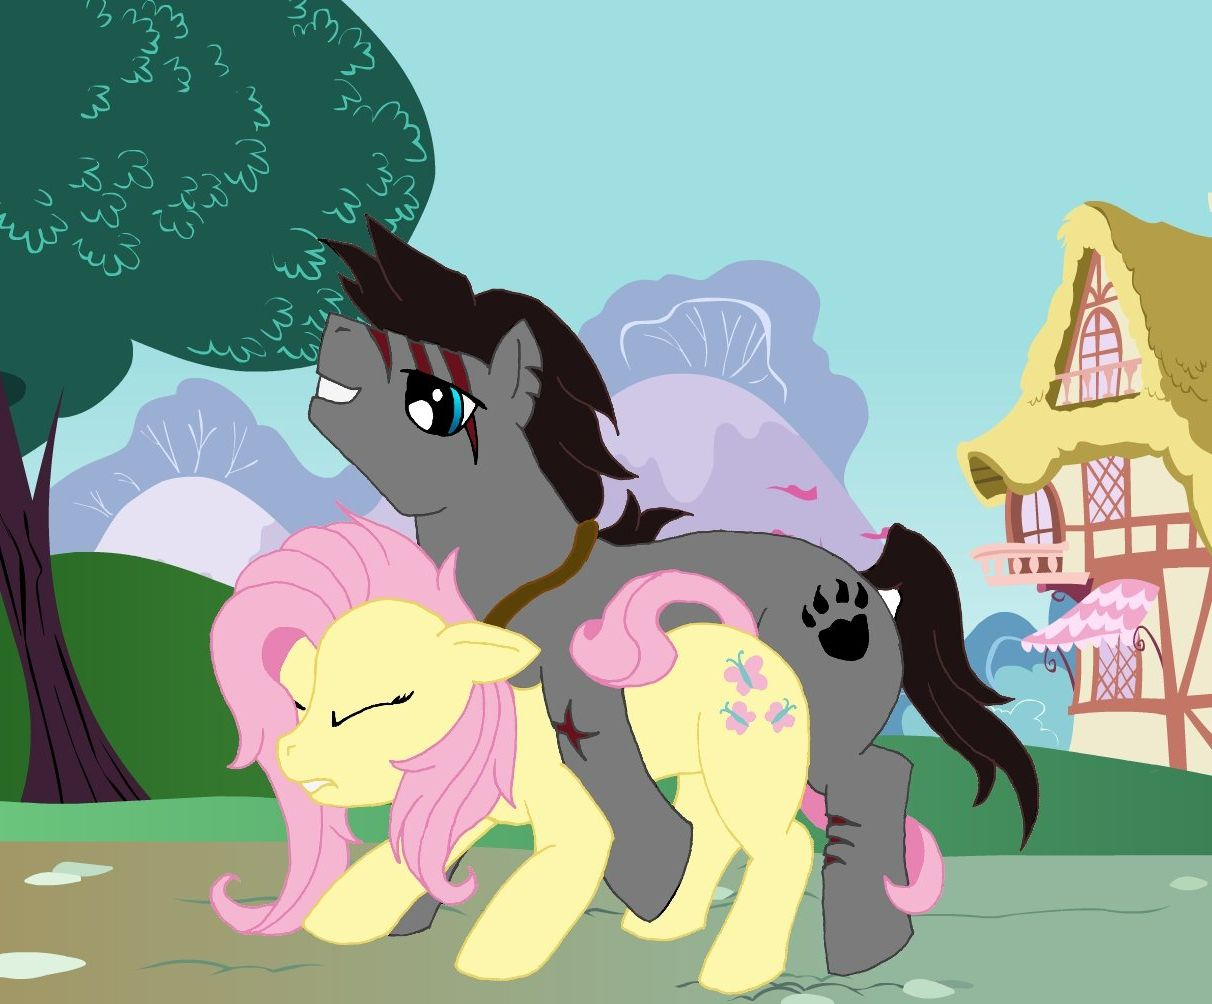 little-pony image_26916.jpg